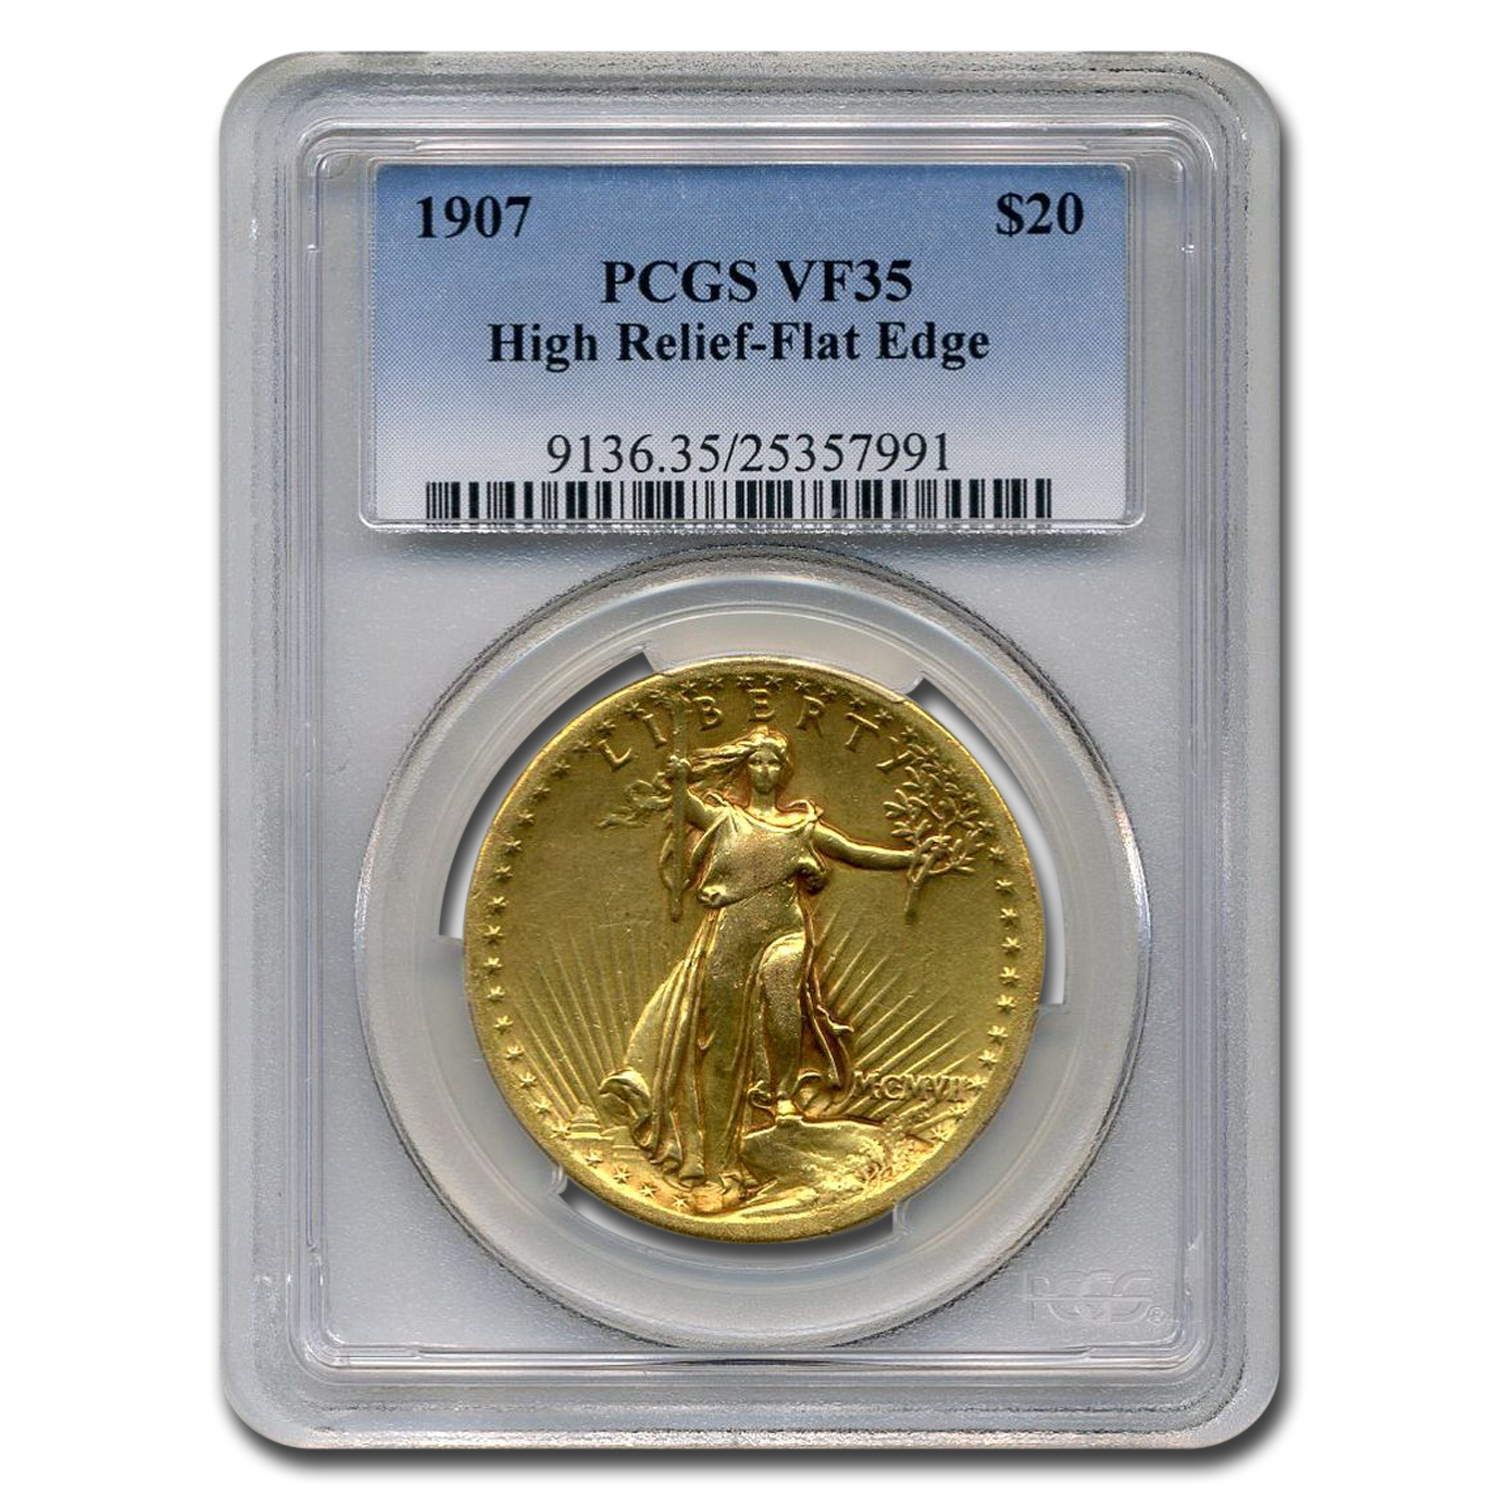 1907 $20 St. Gaudens Gold - High Relief Flat Rim - VF-35 PCGS